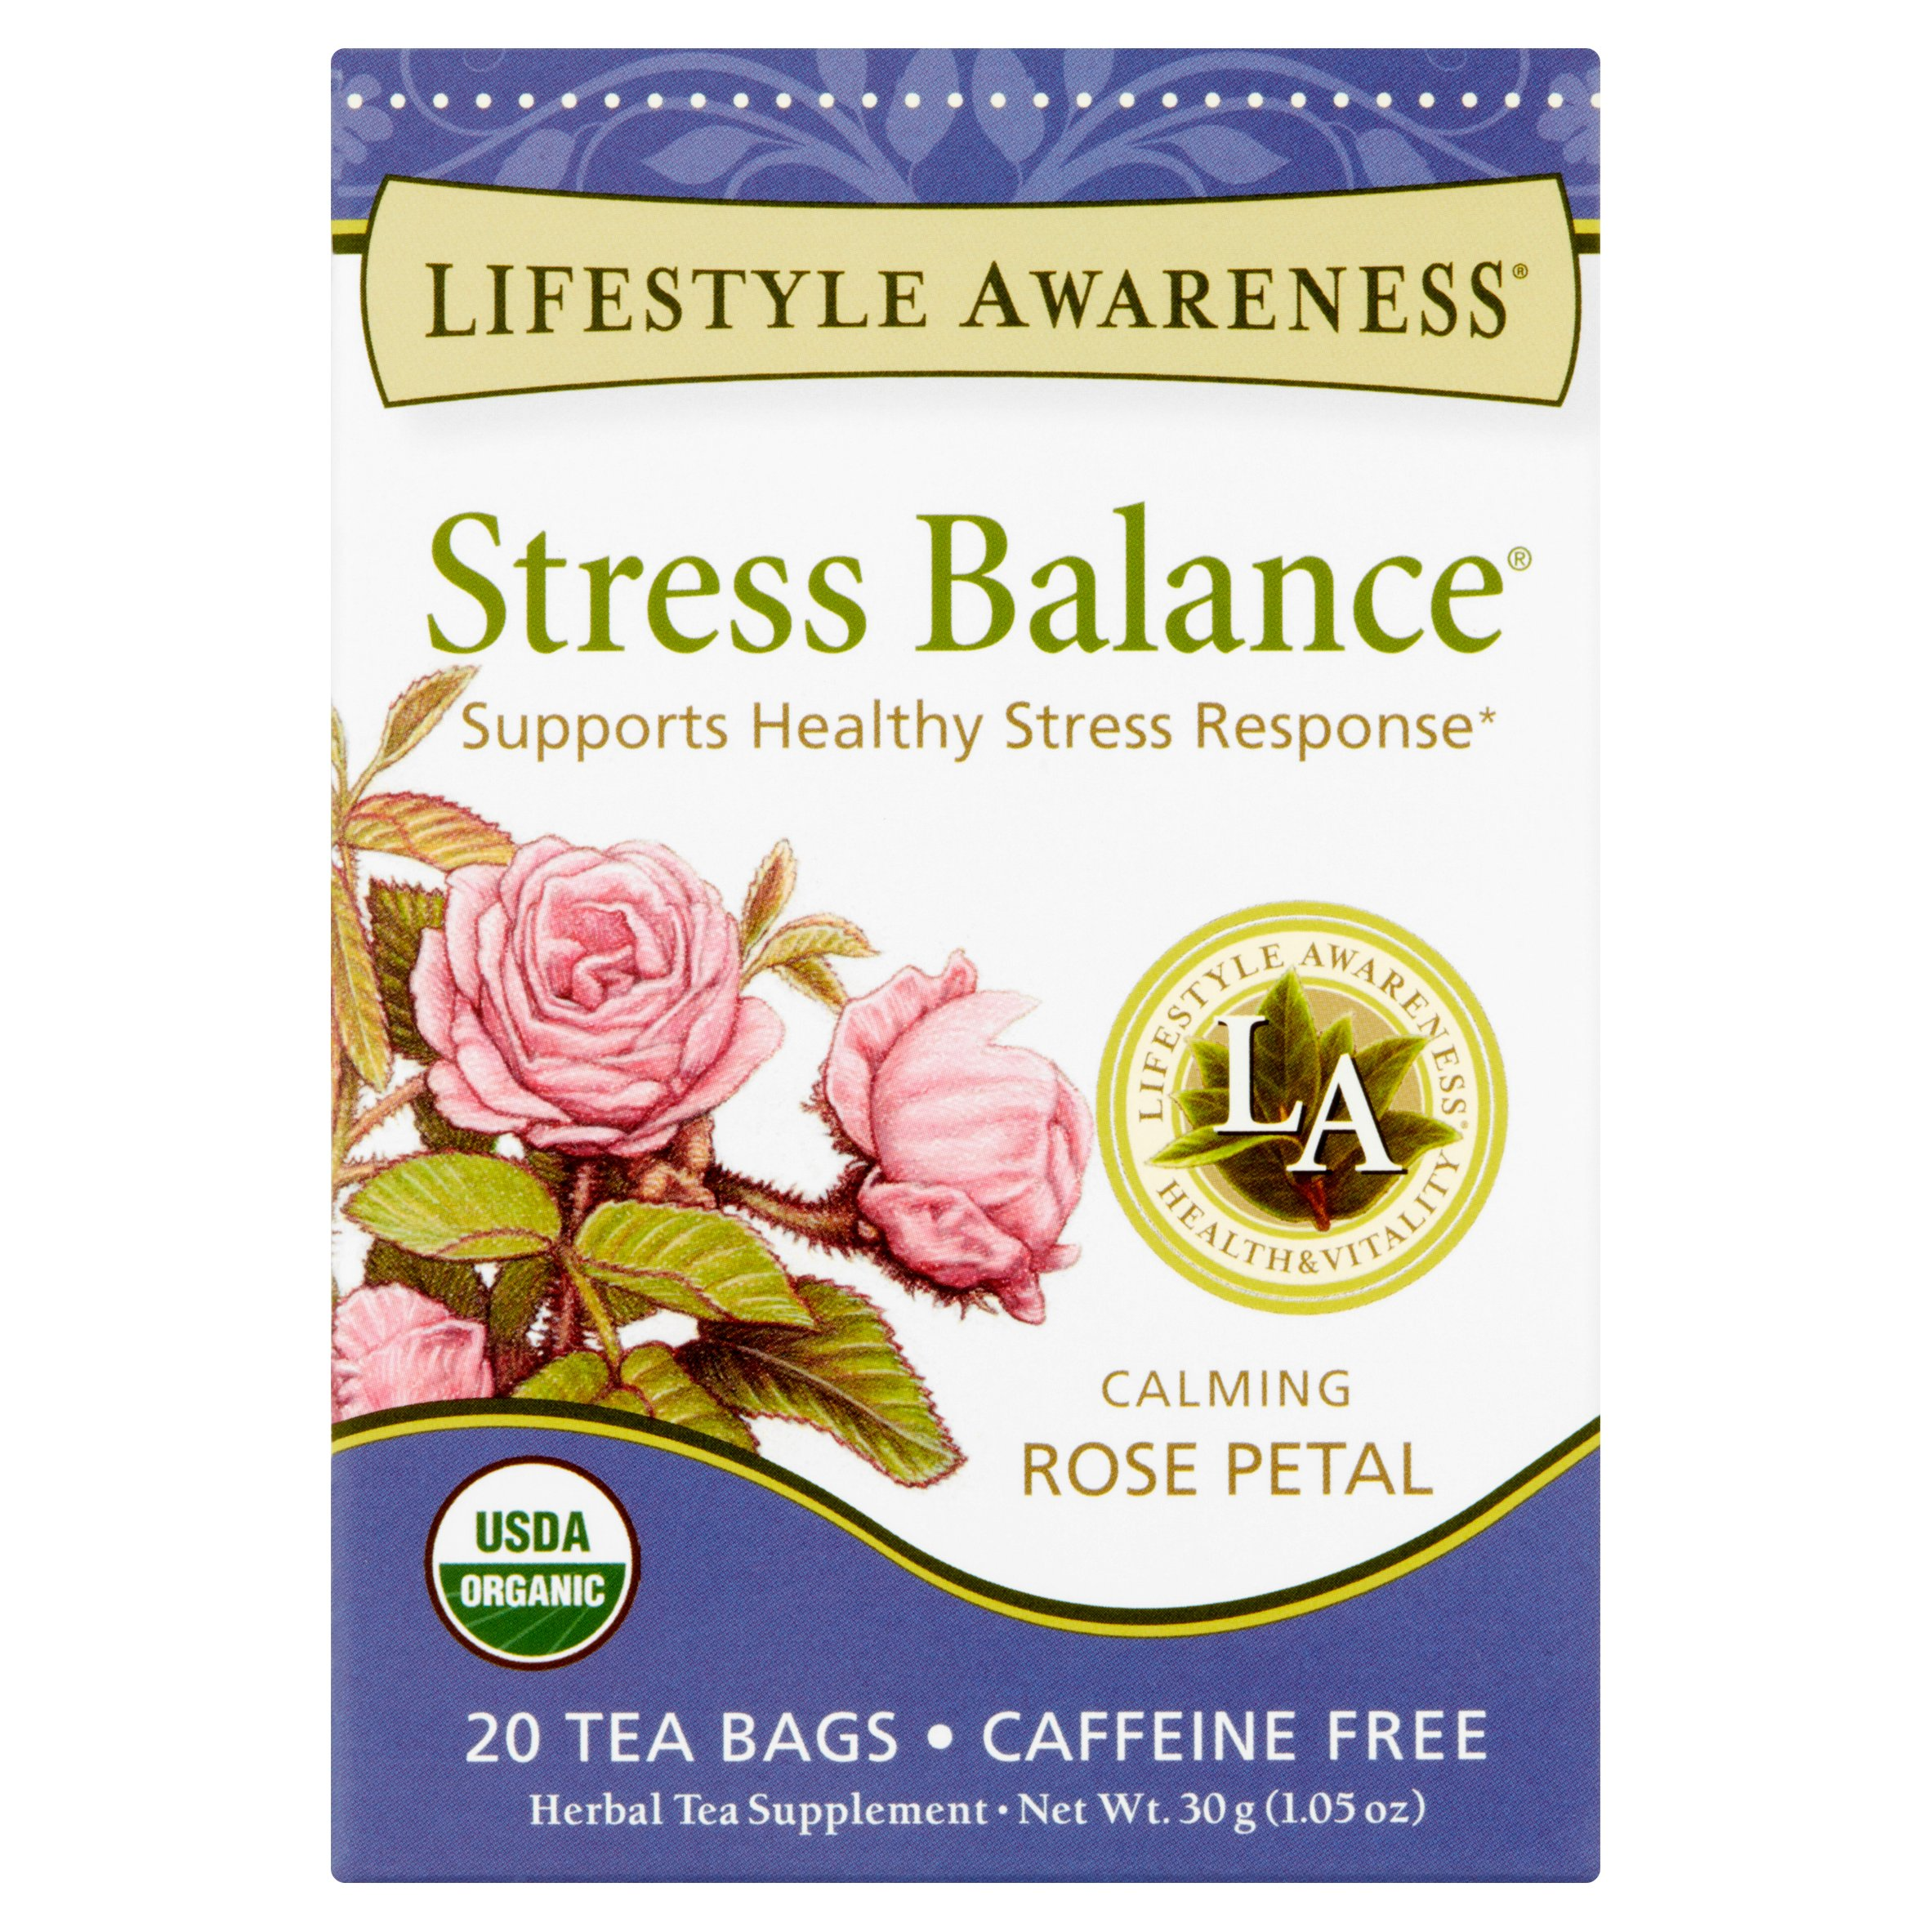 Lifestyle Awareness Stress Balance Tea with Calming Rose Petal, Caffeine Free, 20 Tea Bags, Pack of 6